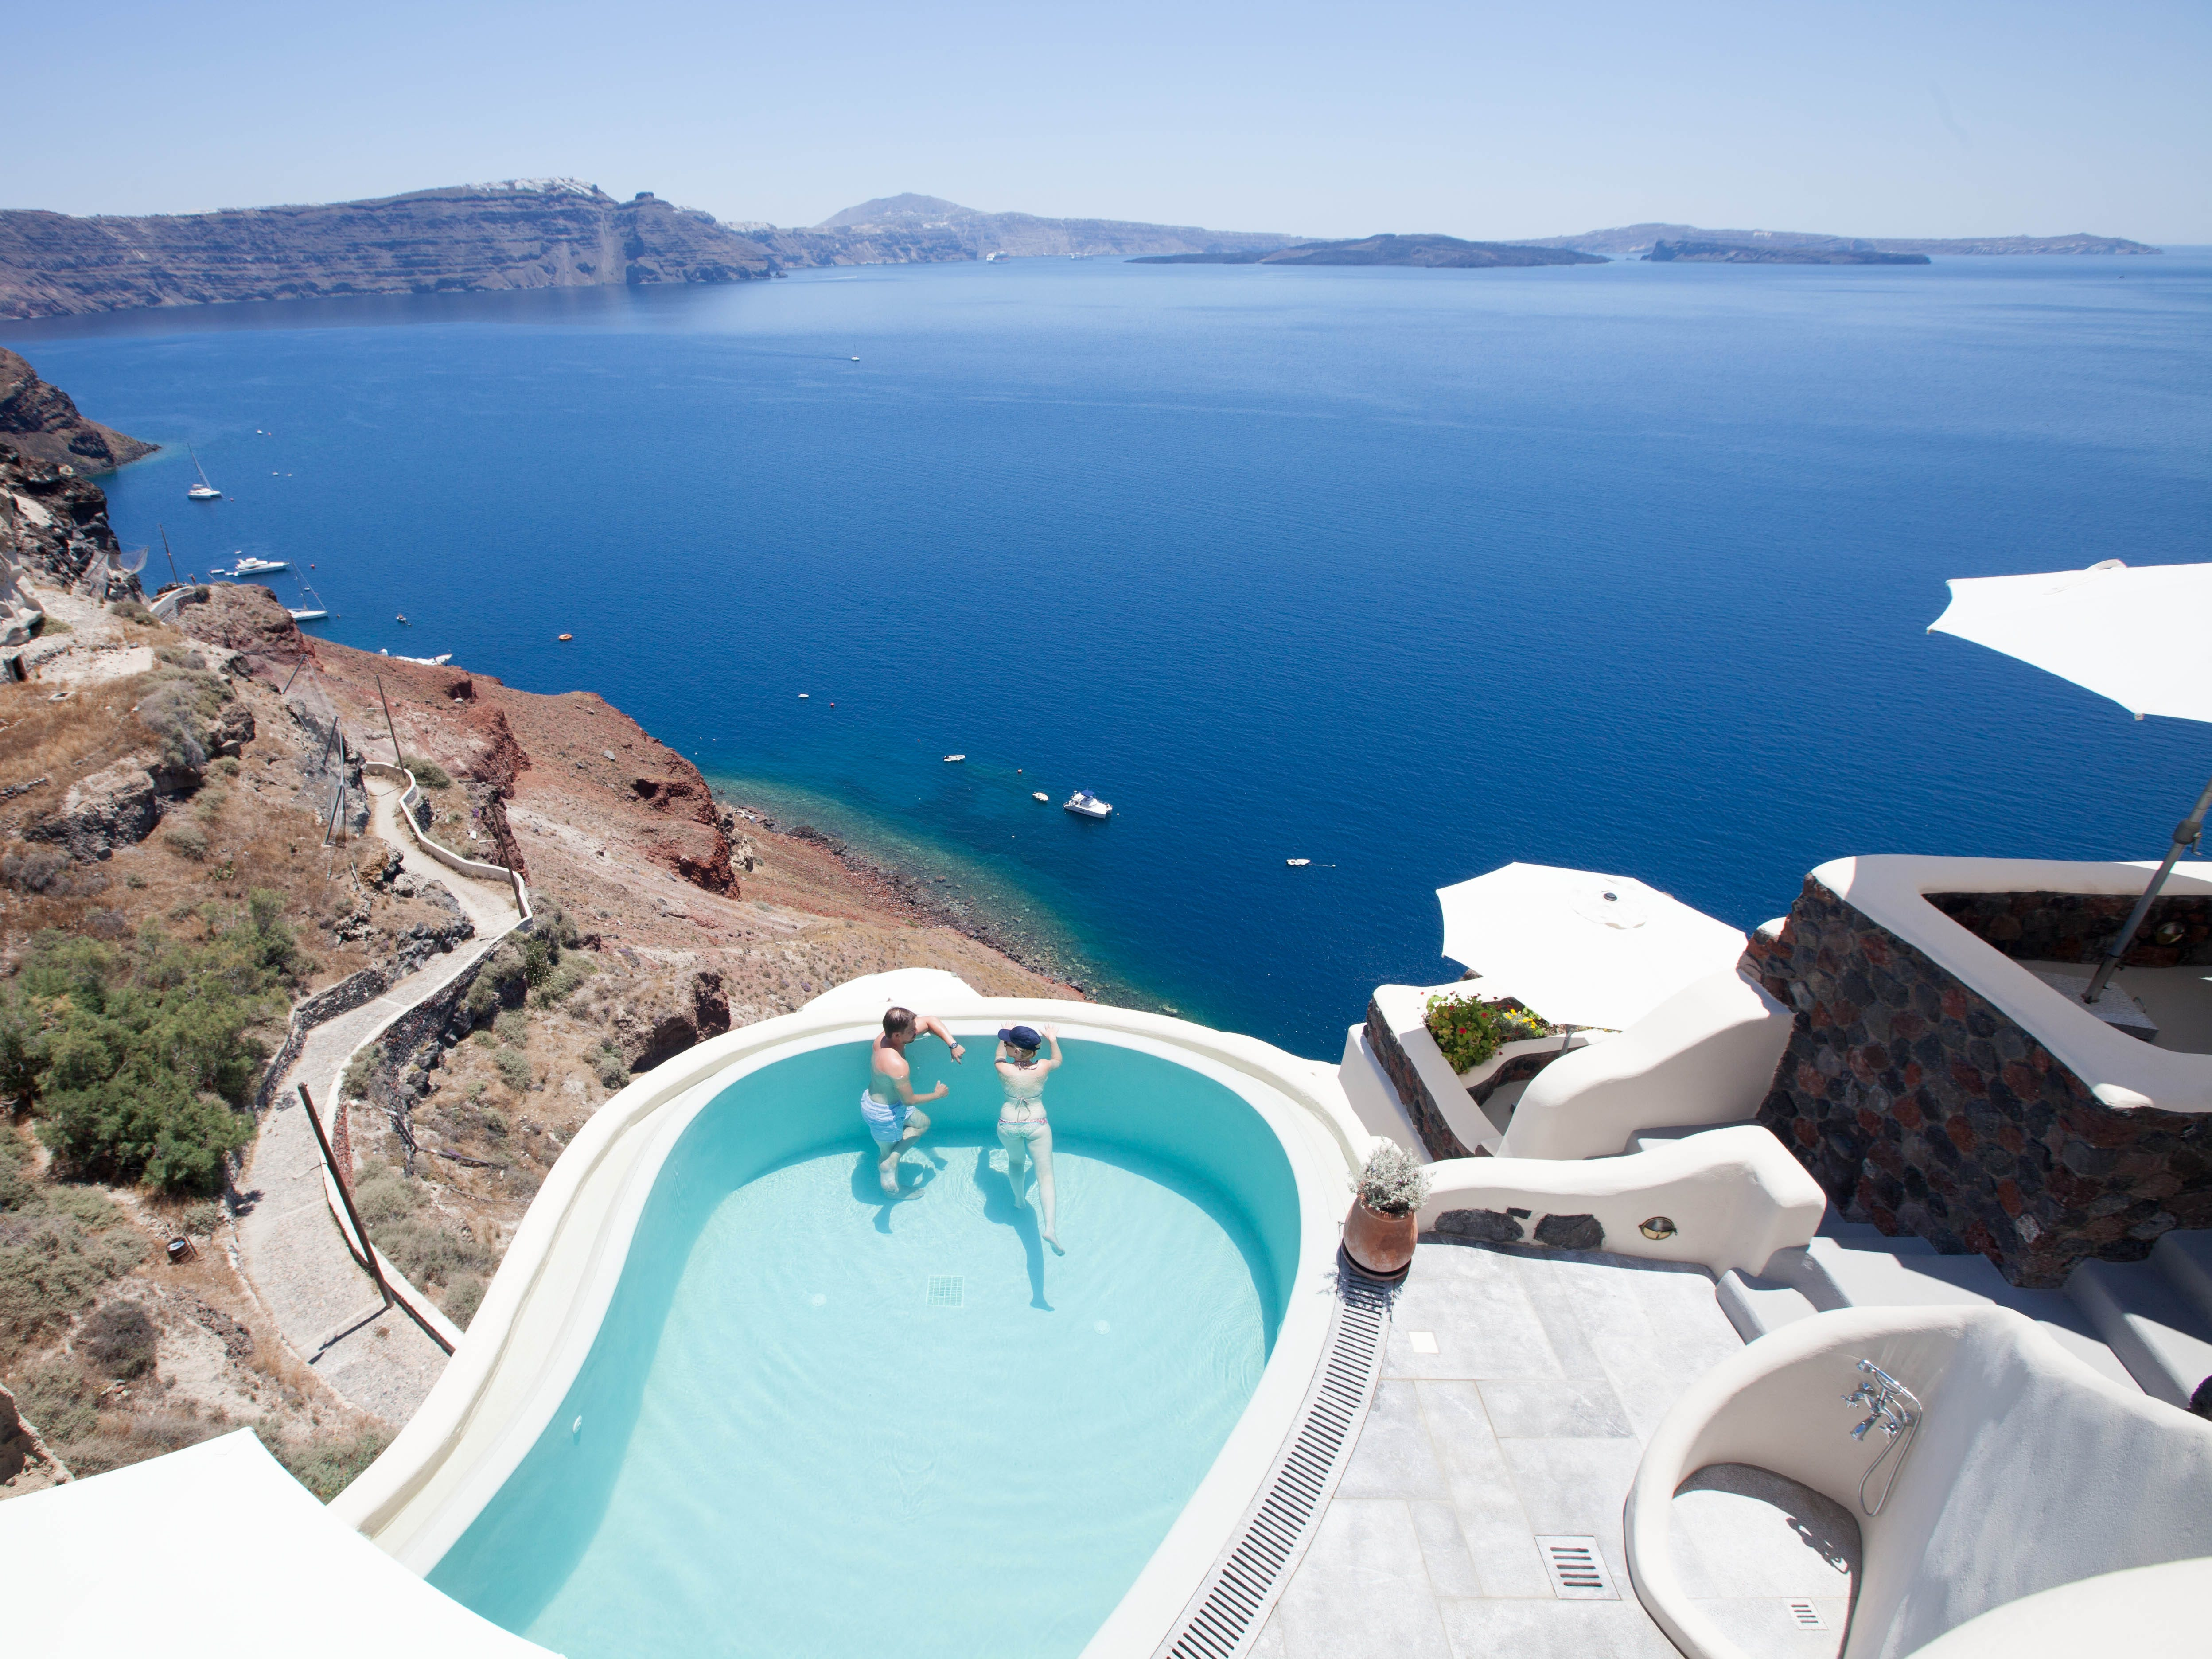 Pezoules: It's tough not to fall in love with and in Pezoules, a six-room knockout set a few steps from Oia. Set up for beautiful views along the lower caldera cliffs, the property is small and quiet – save for a few people and donkeys – making it prime for honeymooning couples seeking some solitude. Many of the rooms sport that Instagram-worthy Santorini style (think cave-like accommodations with whitewashed walls), though it's the picture-perfect infinity pool that will keep the spark alive.